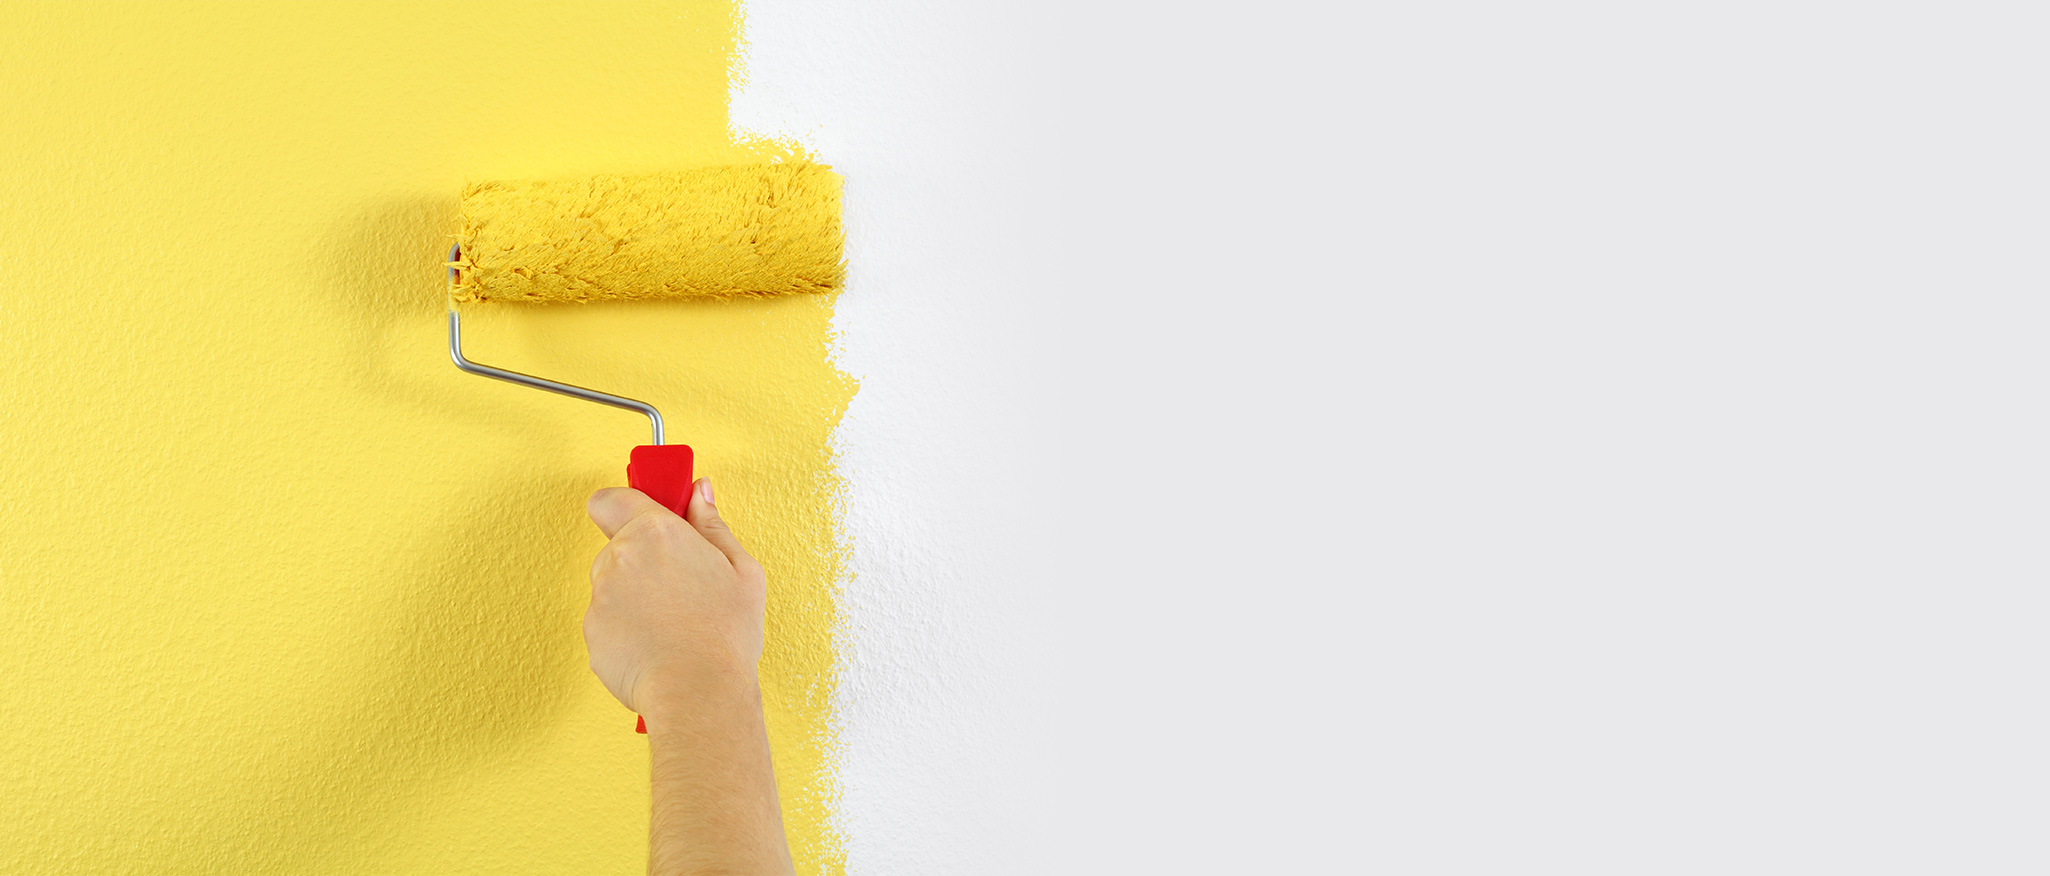 paint roller with yellow paint painting white wall